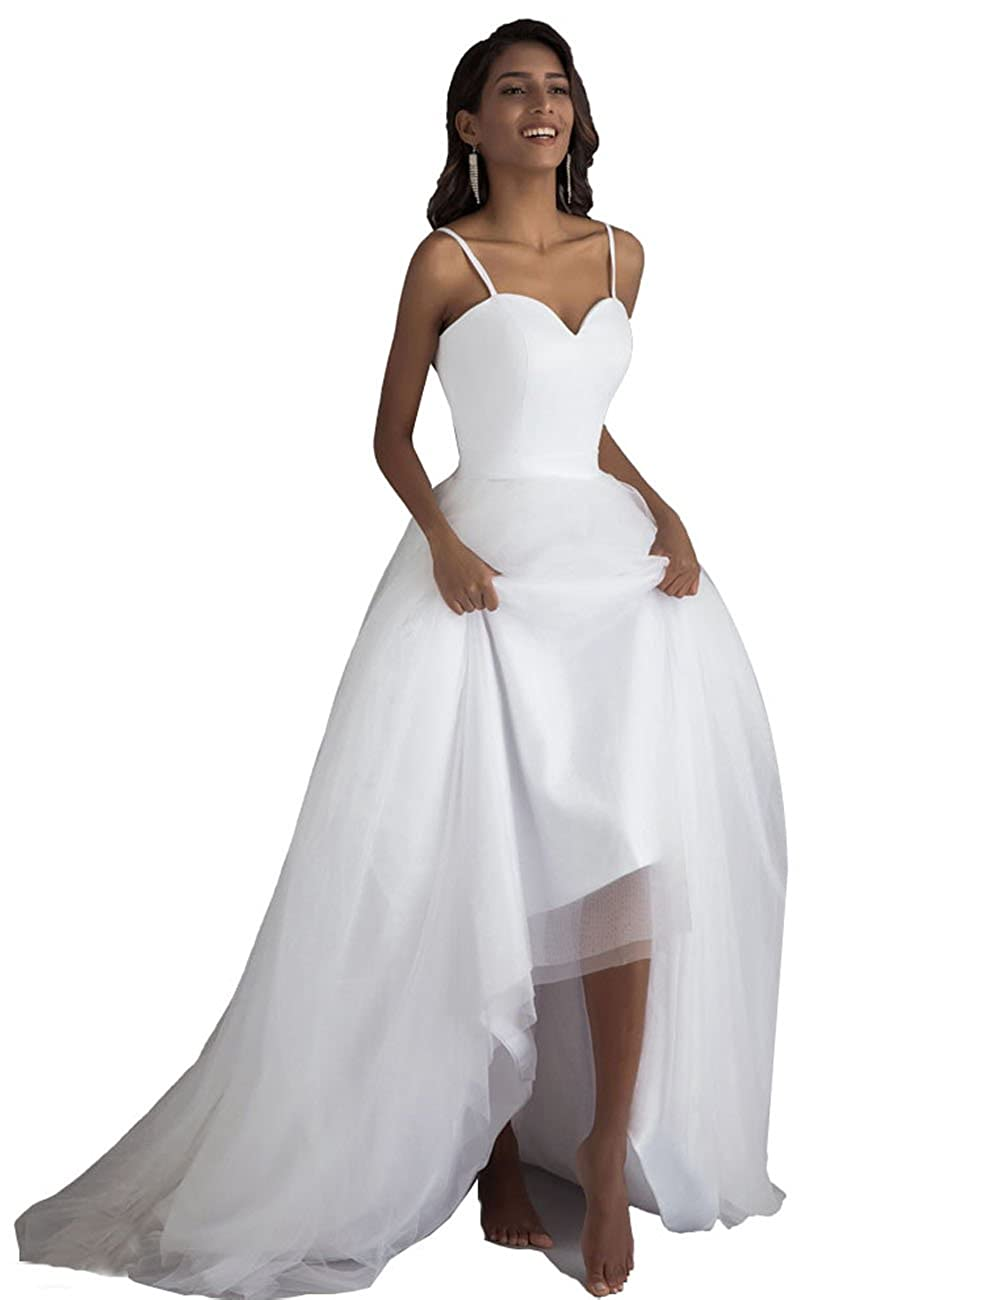 Lorie Spaghetti Strap Beach Wedding Dresses With Sashes Small Train